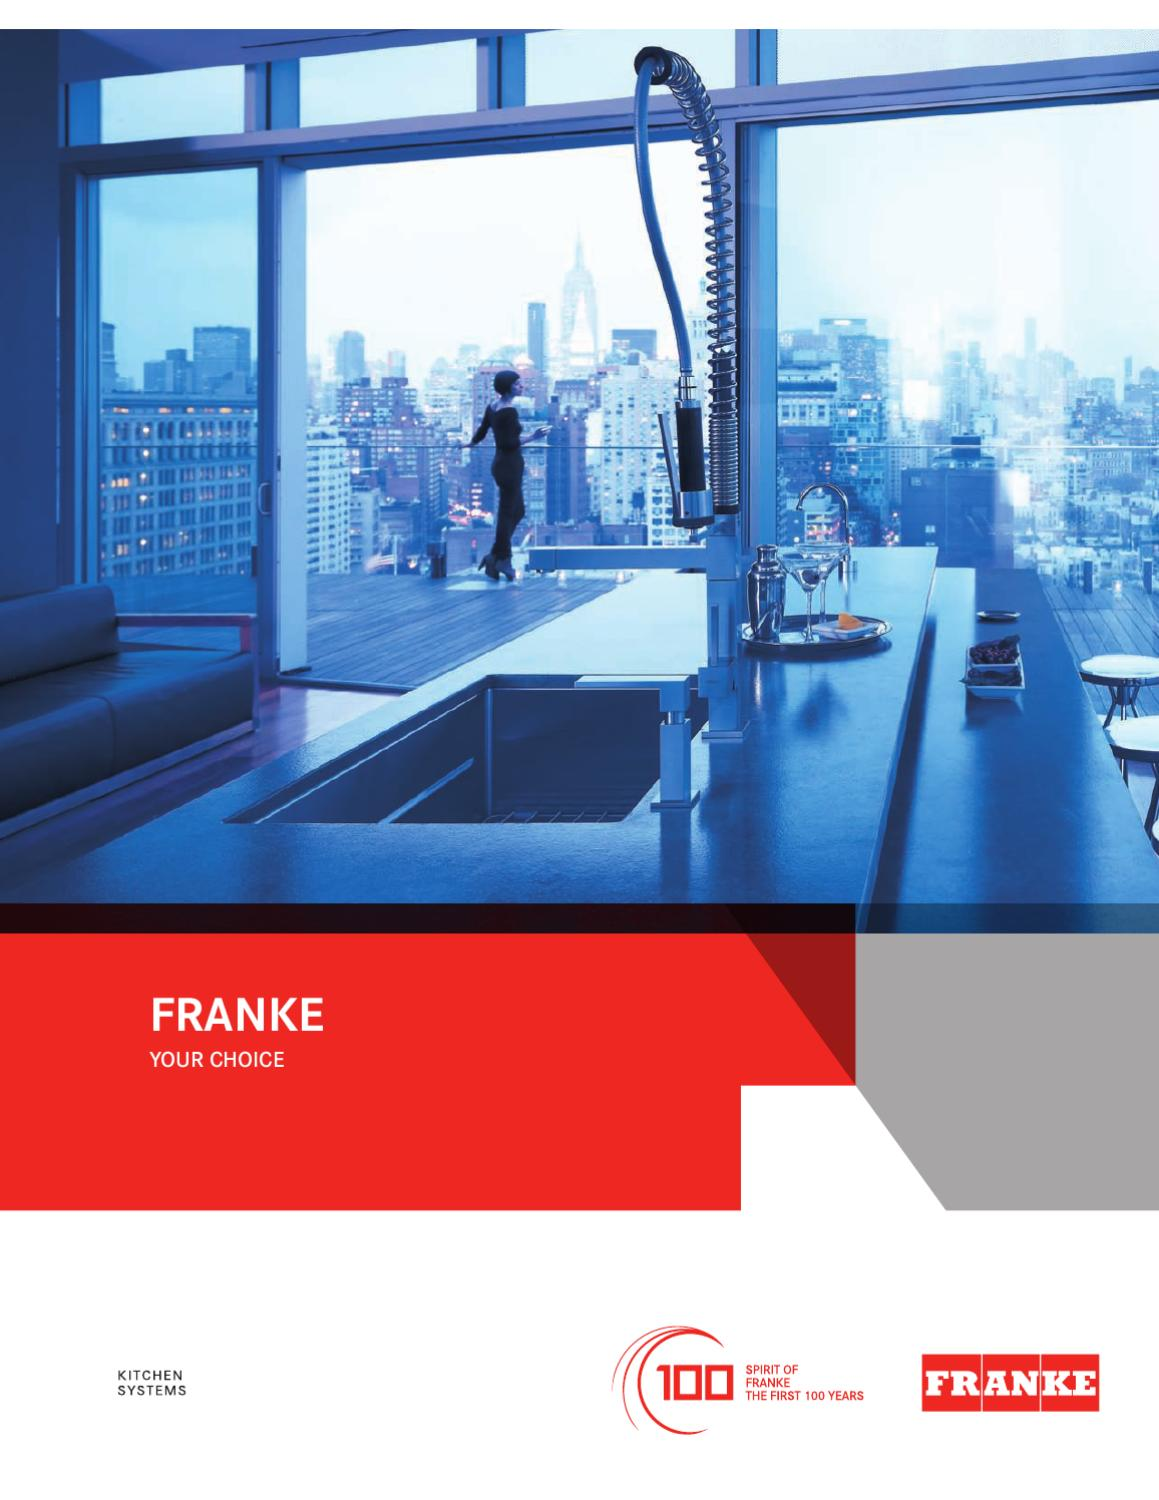 franke kitchen systems us luxury catalog by franke. Black Bedroom Furniture Sets. Home Design Ideas